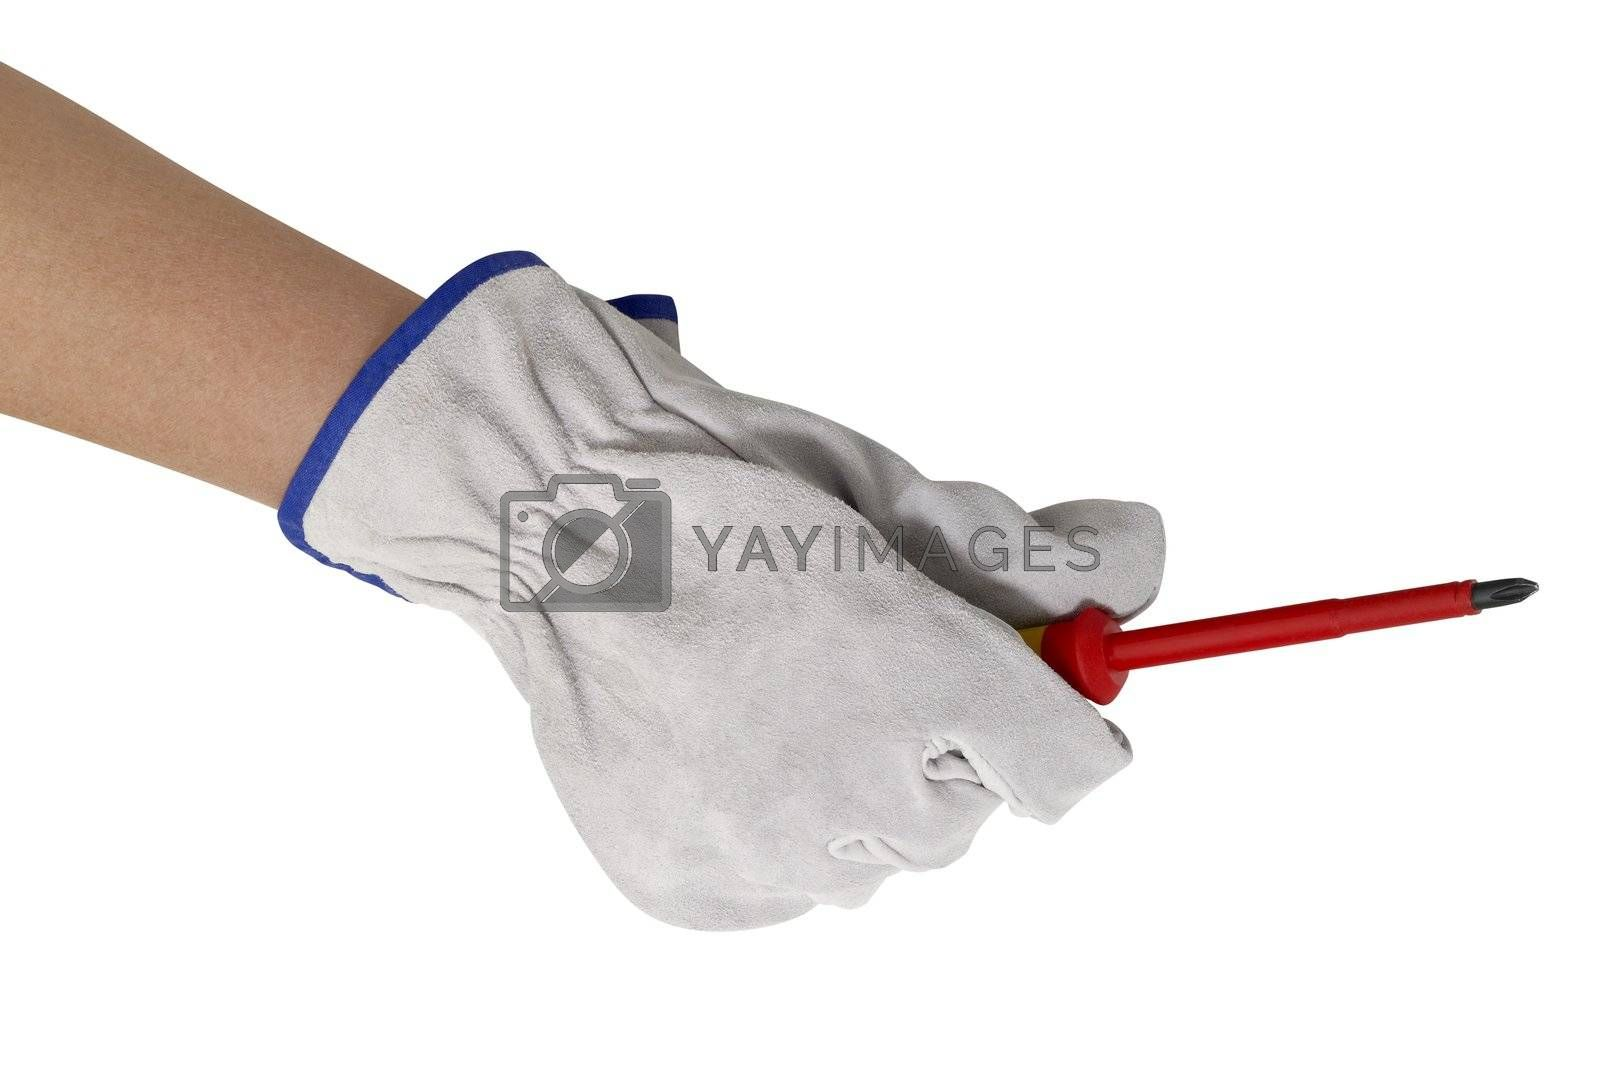 hand gloved with a light grey working glove holding a screwdriver.Studio shot in white back